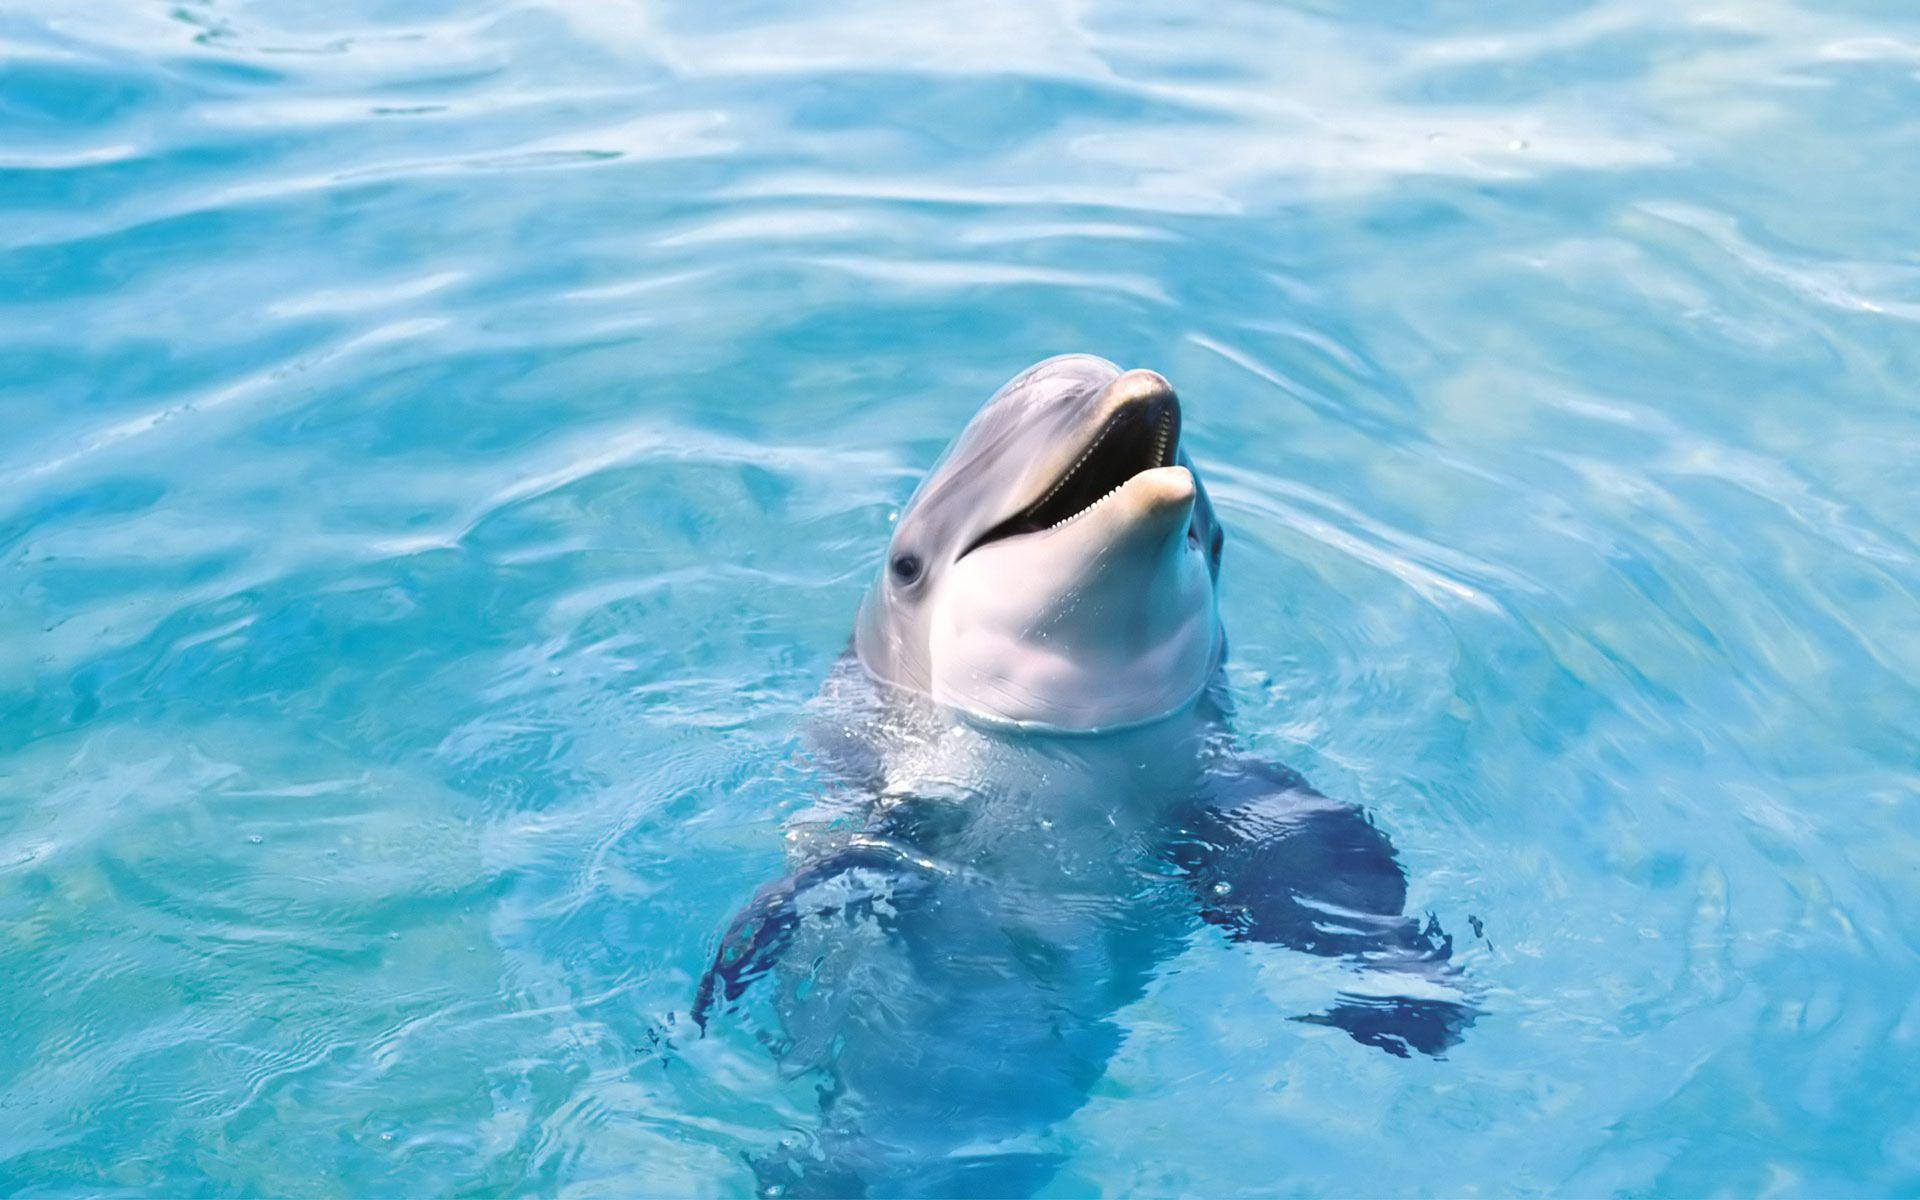 free dolphin wallpaper image hd wallpapers pictures hd wallpaper